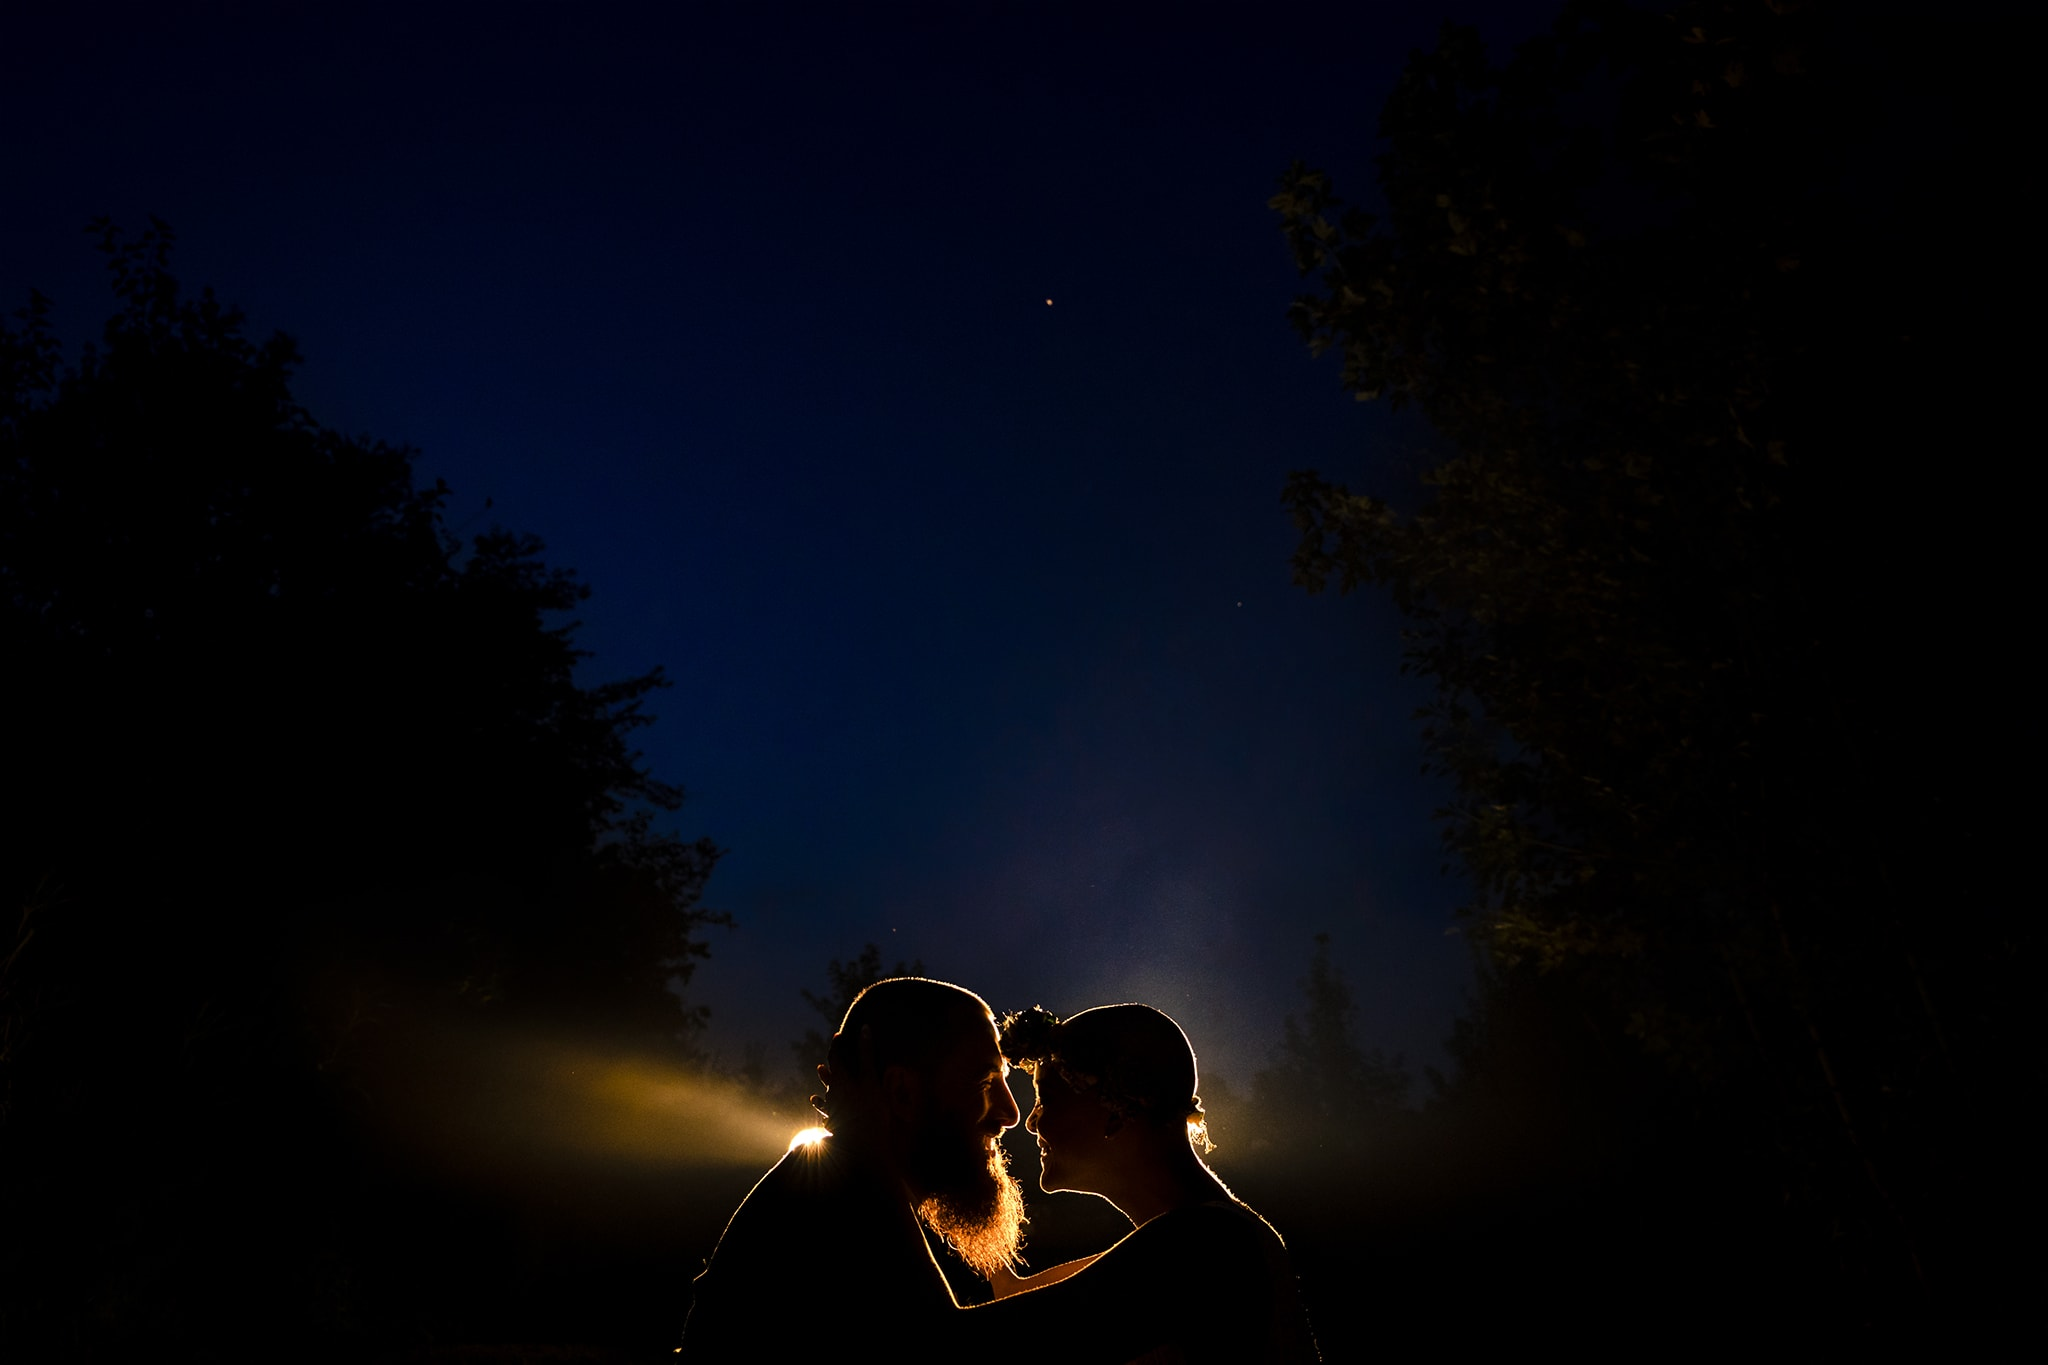 Bride and groom sit together after their intimate elopement, silhouetted against the night sky in Cincinnati, Ohio by Studio 22 Photography